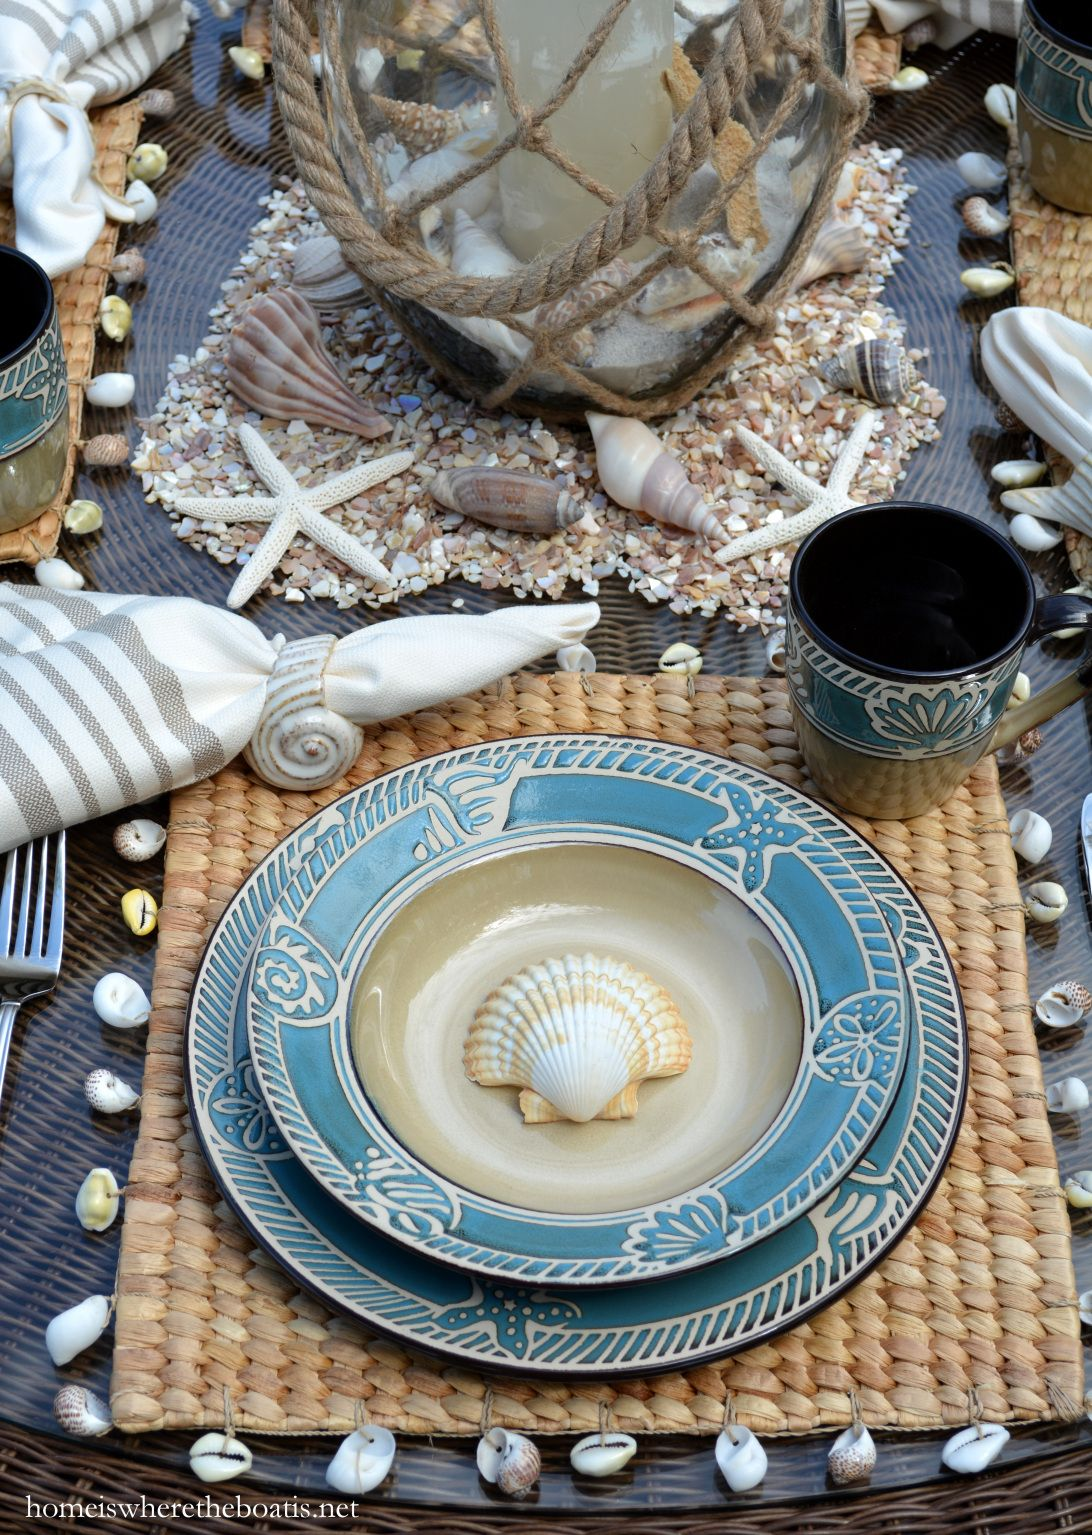 Beach-themed table with shells and Pfaltzgraff Montego dinnerware | homeiswheretheboatis.net & Beach-themed table with shells and Pfaltzgraff Montego dinnerware ...